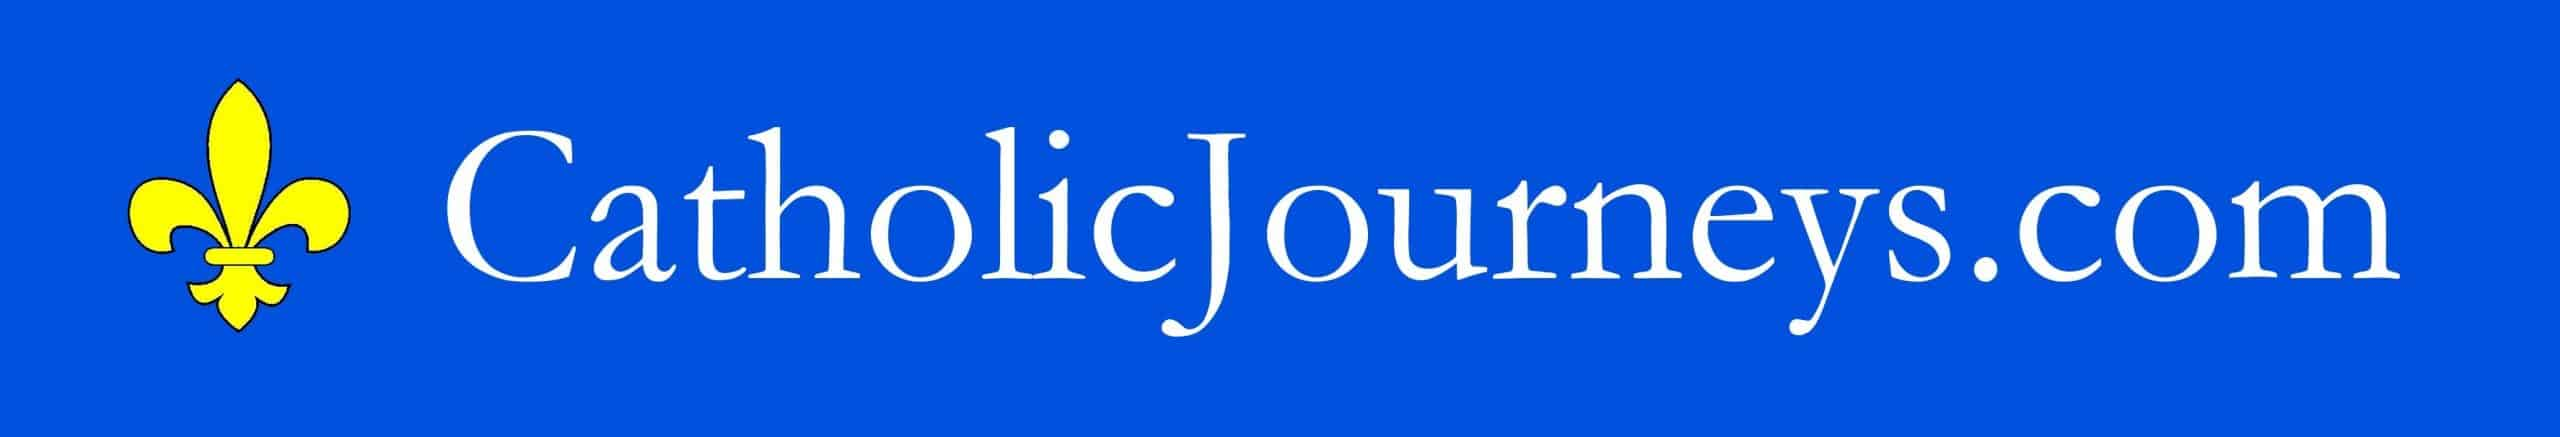 Catholic Journeys logo banner